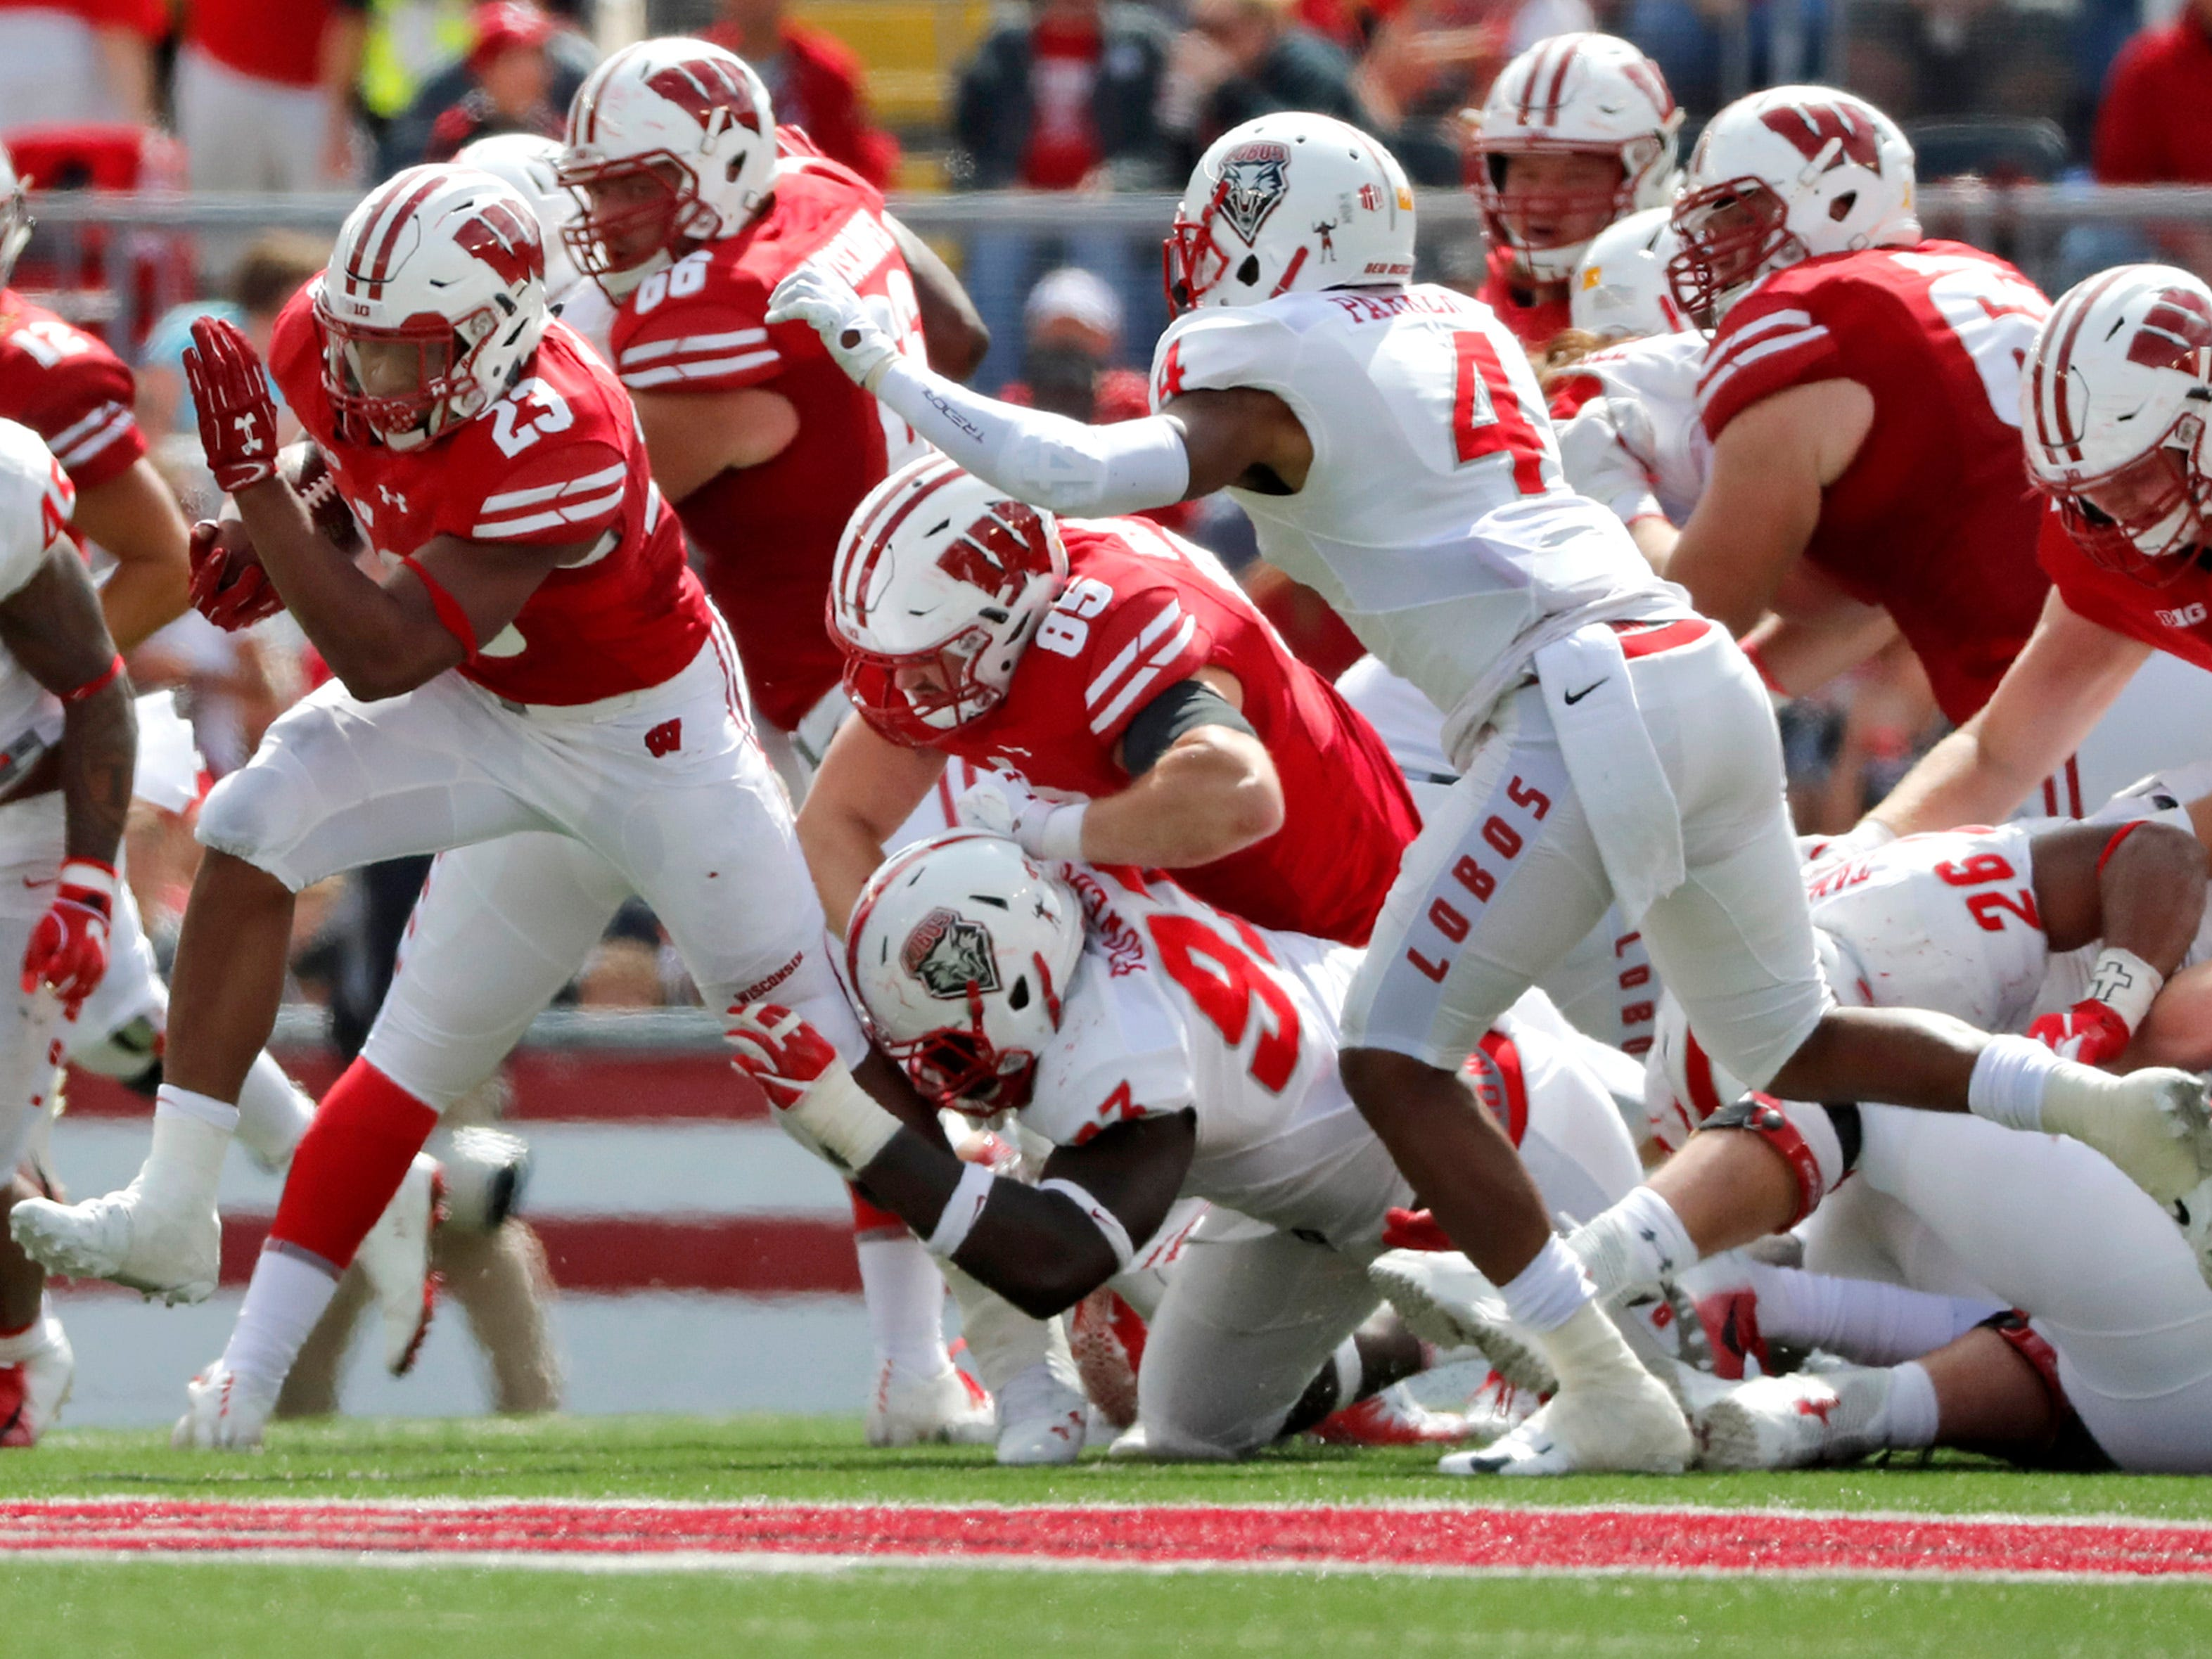 Wisconsin running back Jonathan Taylor  breaks through the defense.